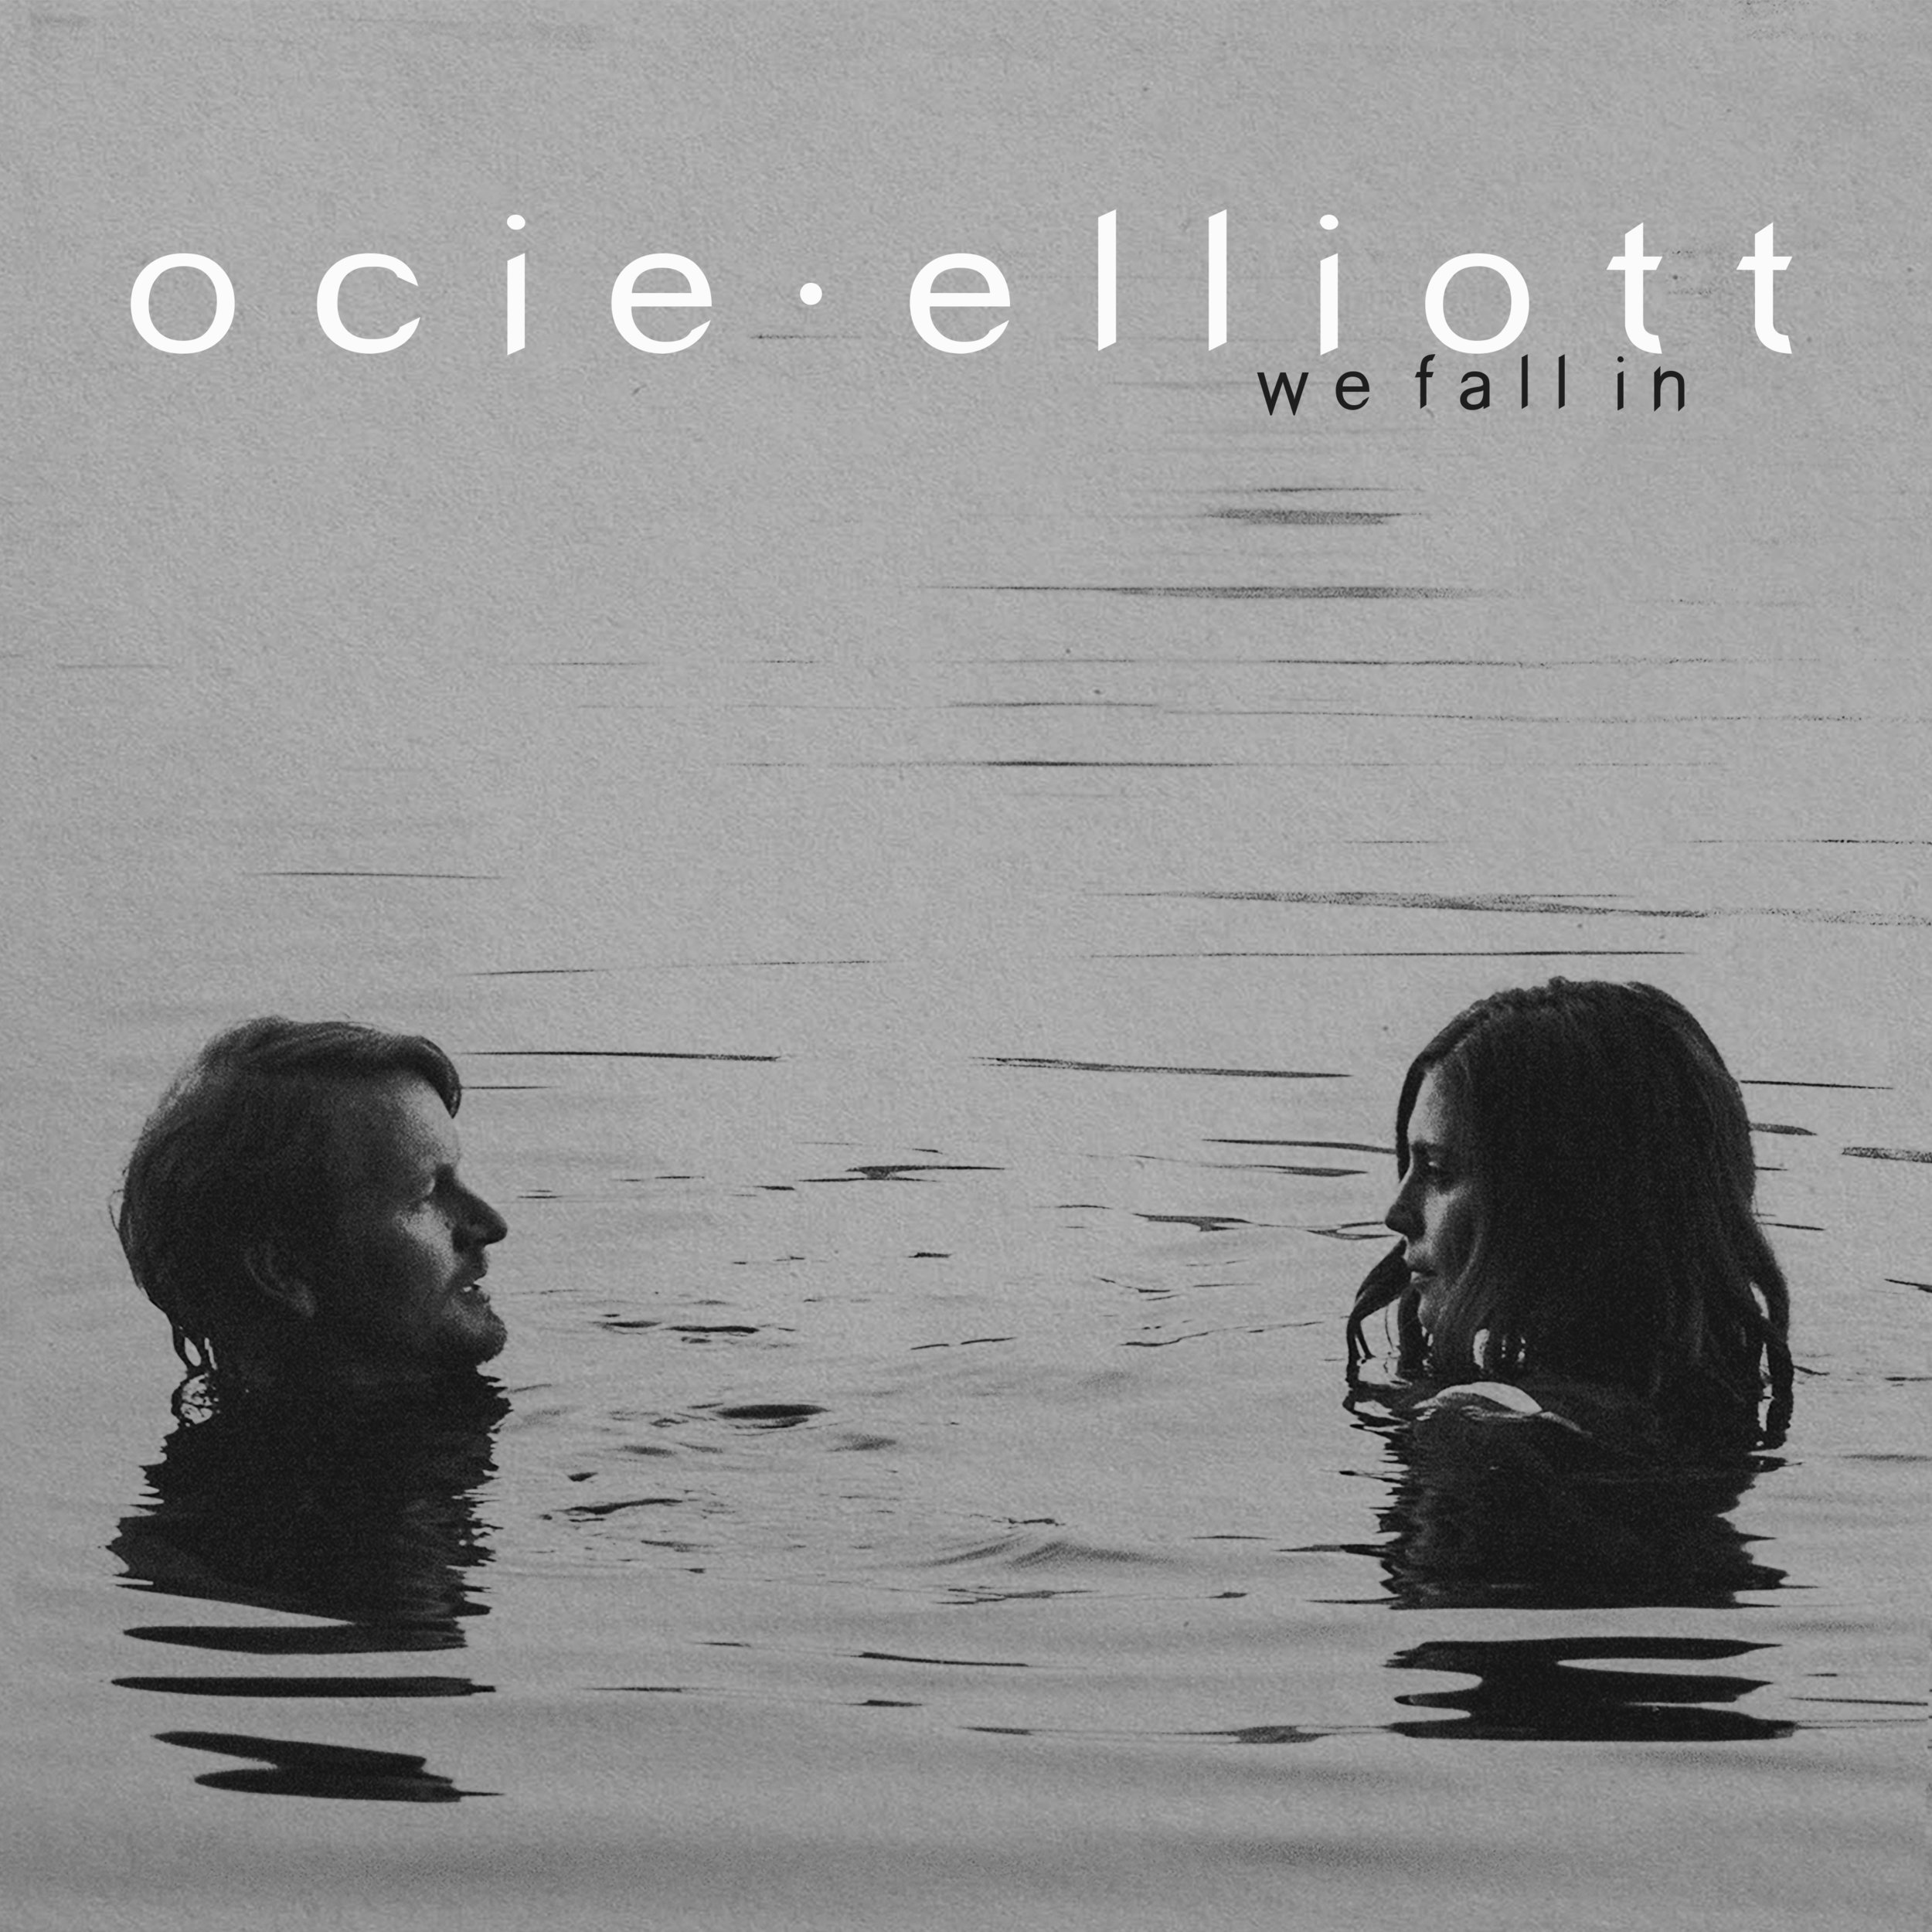 We Fall In out now! - Our new album We Fall In is finally out via Nettwerk Music Group. Click title above to listen.